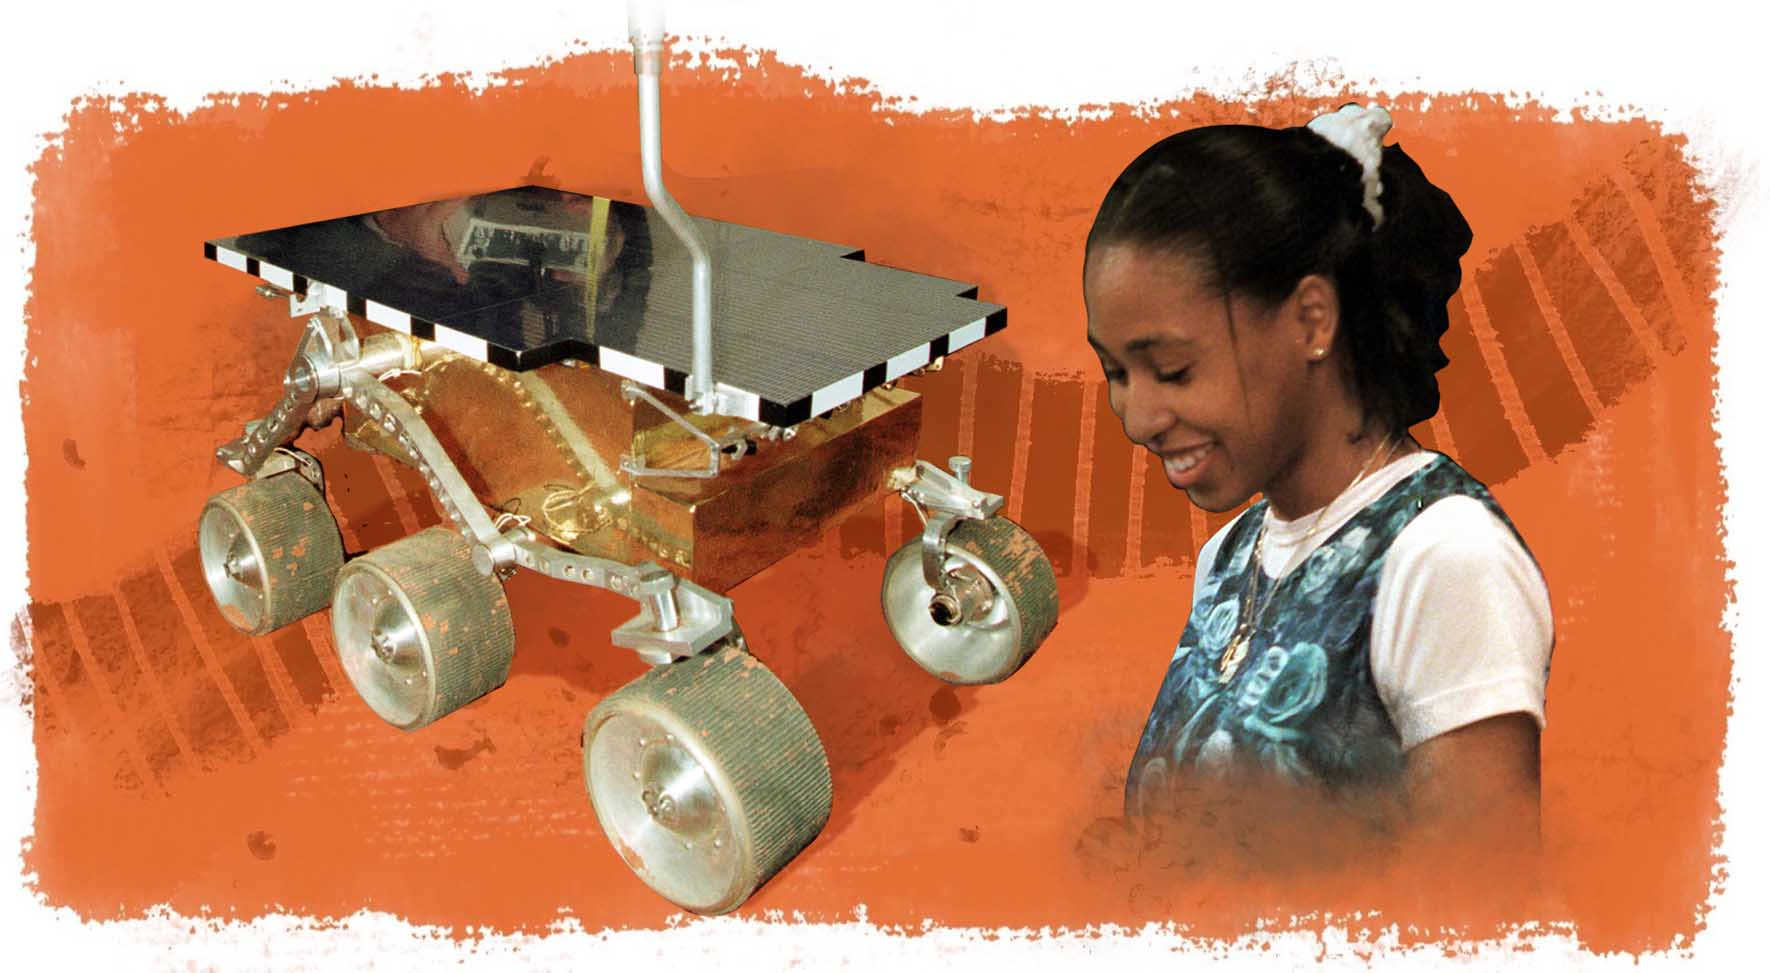 Photo of rover next to photo of Valerie Ambroise, with illustration of tread as background (Photos: © Thomas Kienzle; © Doug Mills/AP Images | Illustration: State Dept./D. Thompson)